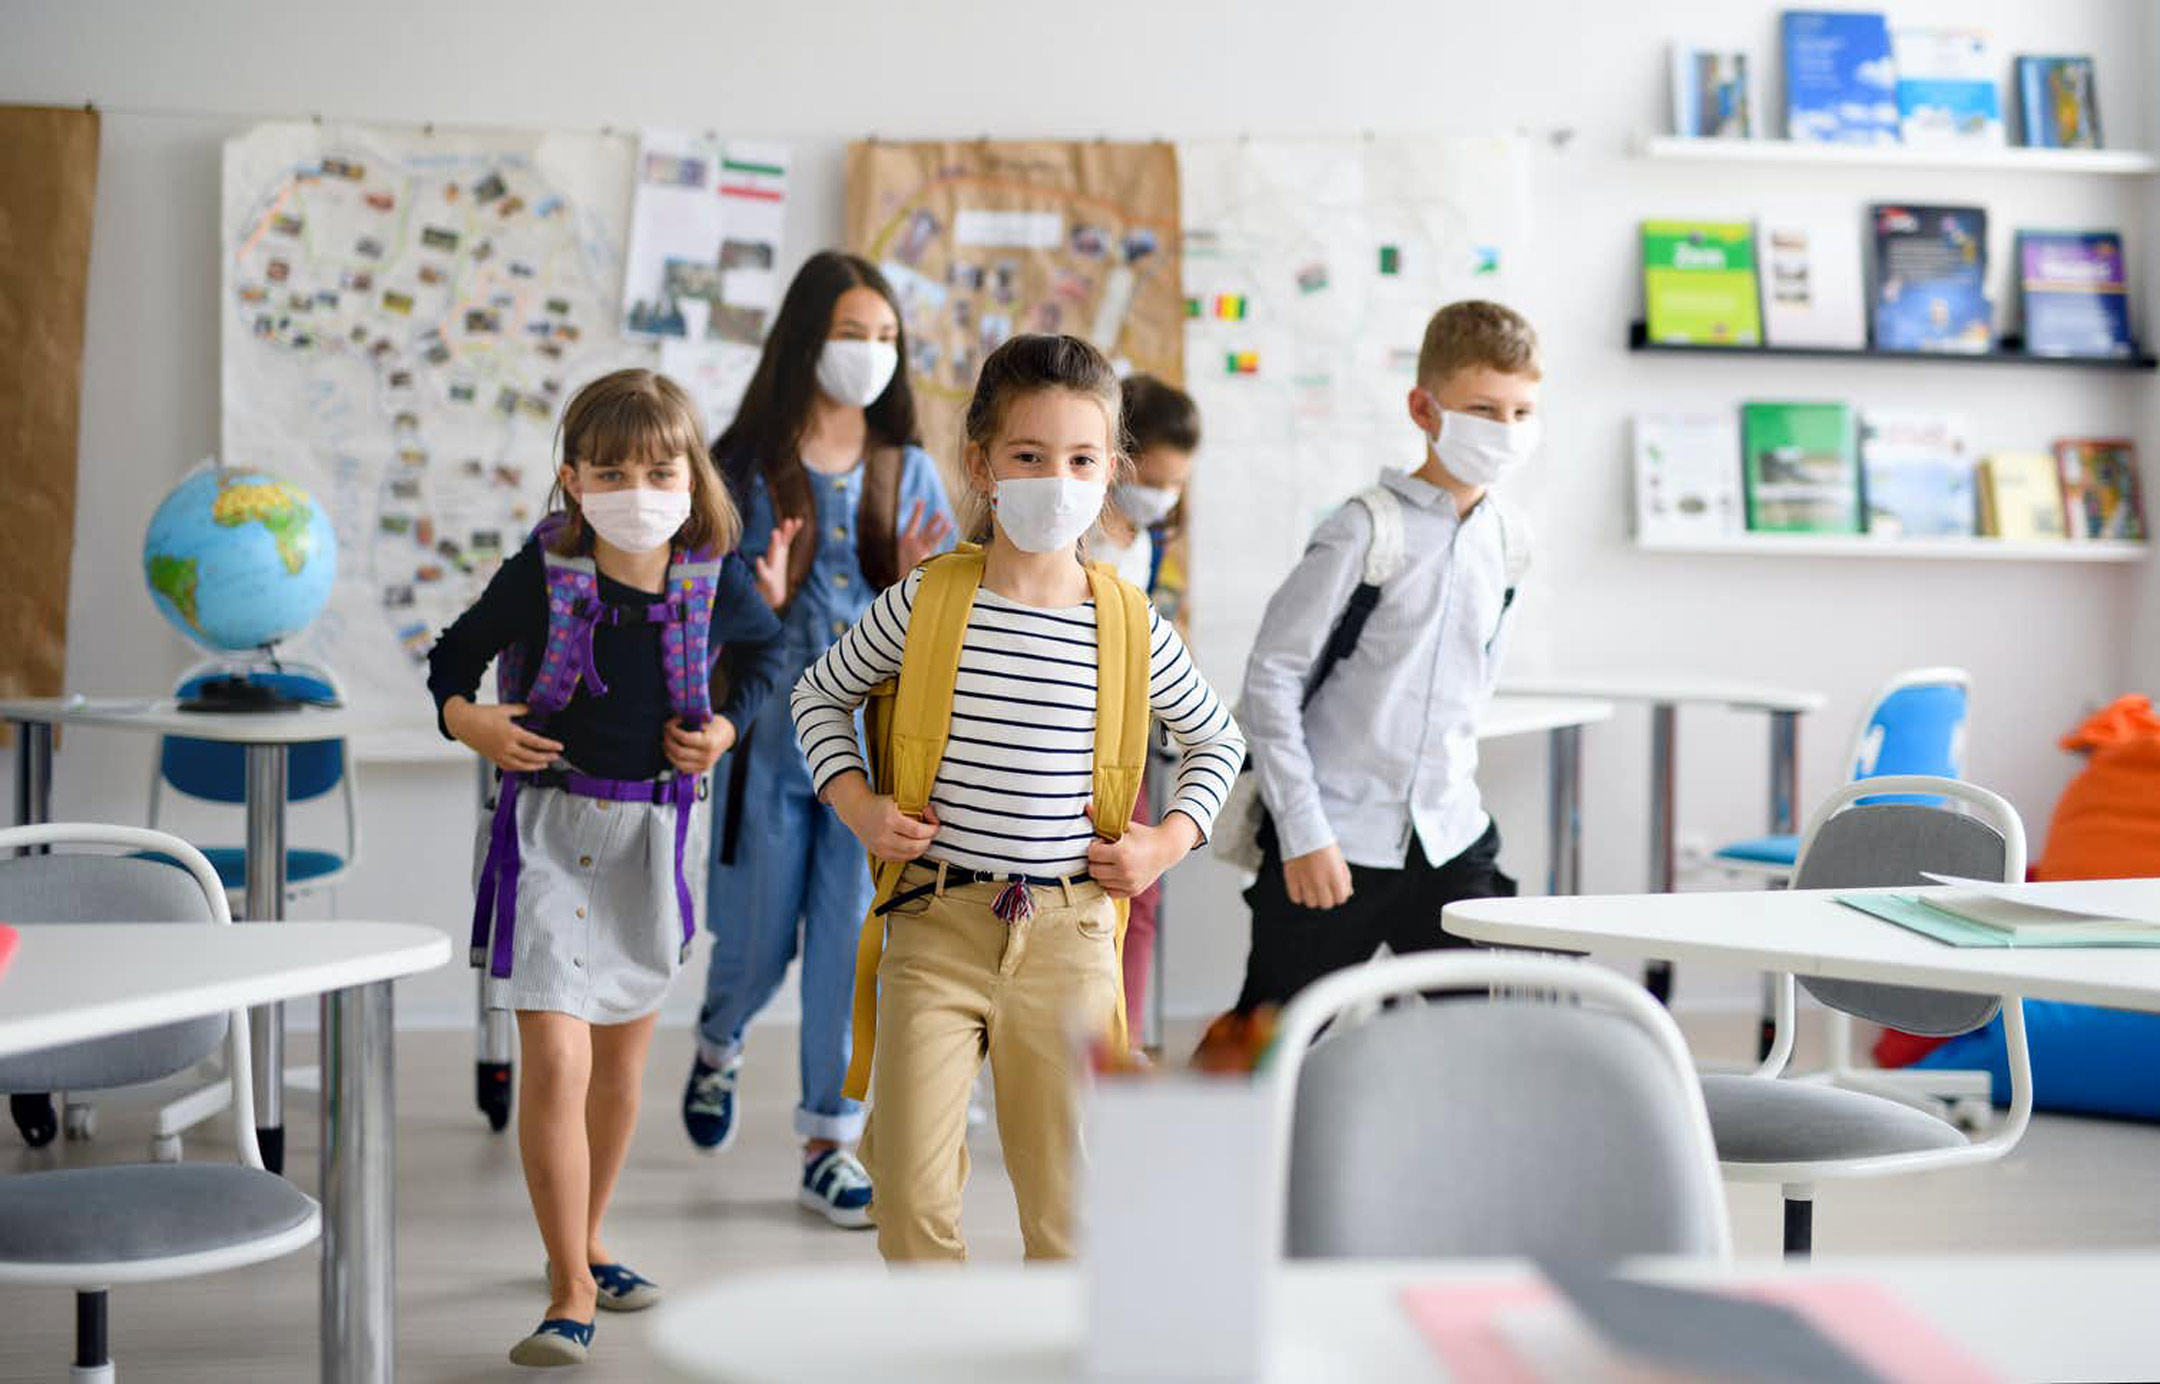 school-kids-entering-classroom-with-masks